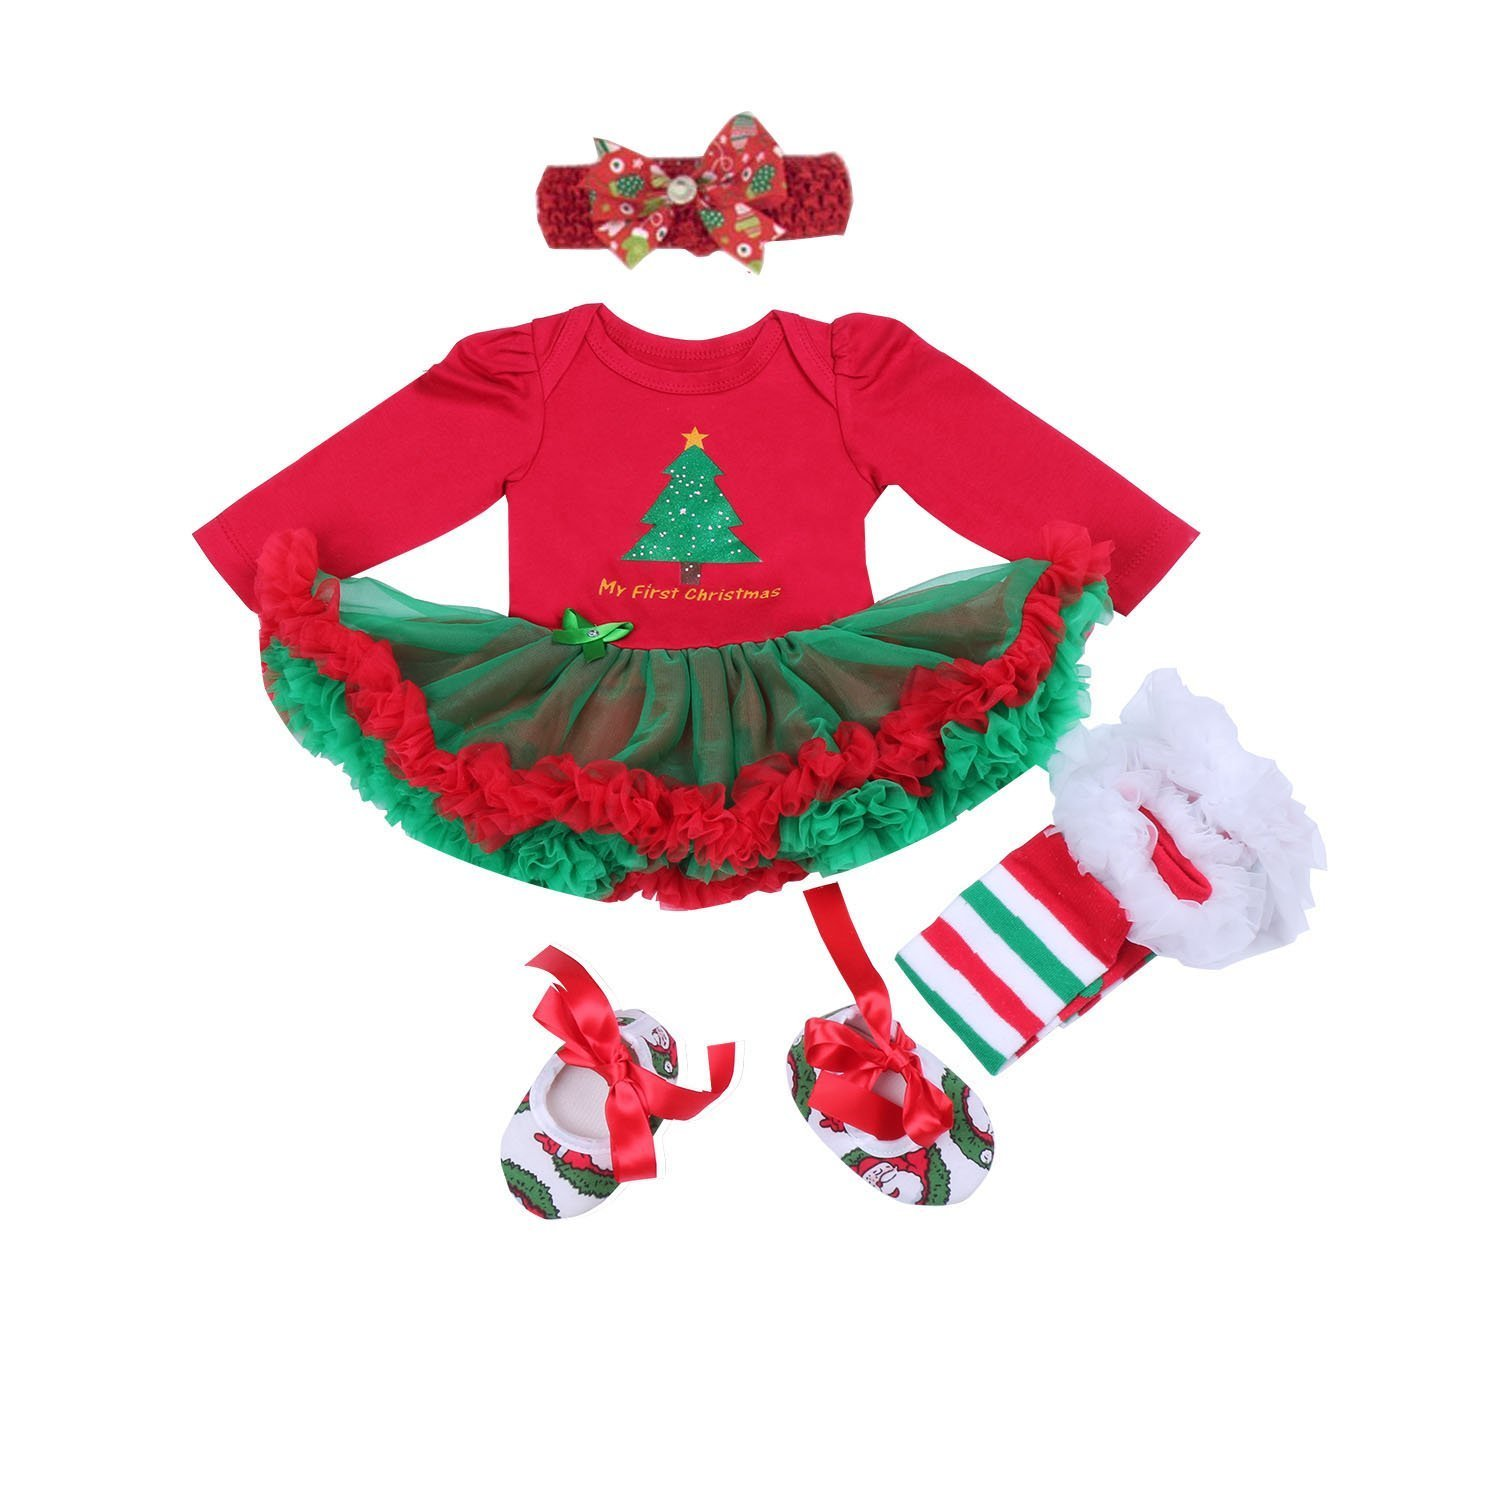 BabyPreg Baby Girls My 1st Christmas Santa Costume Party Dress 4PCS YR150